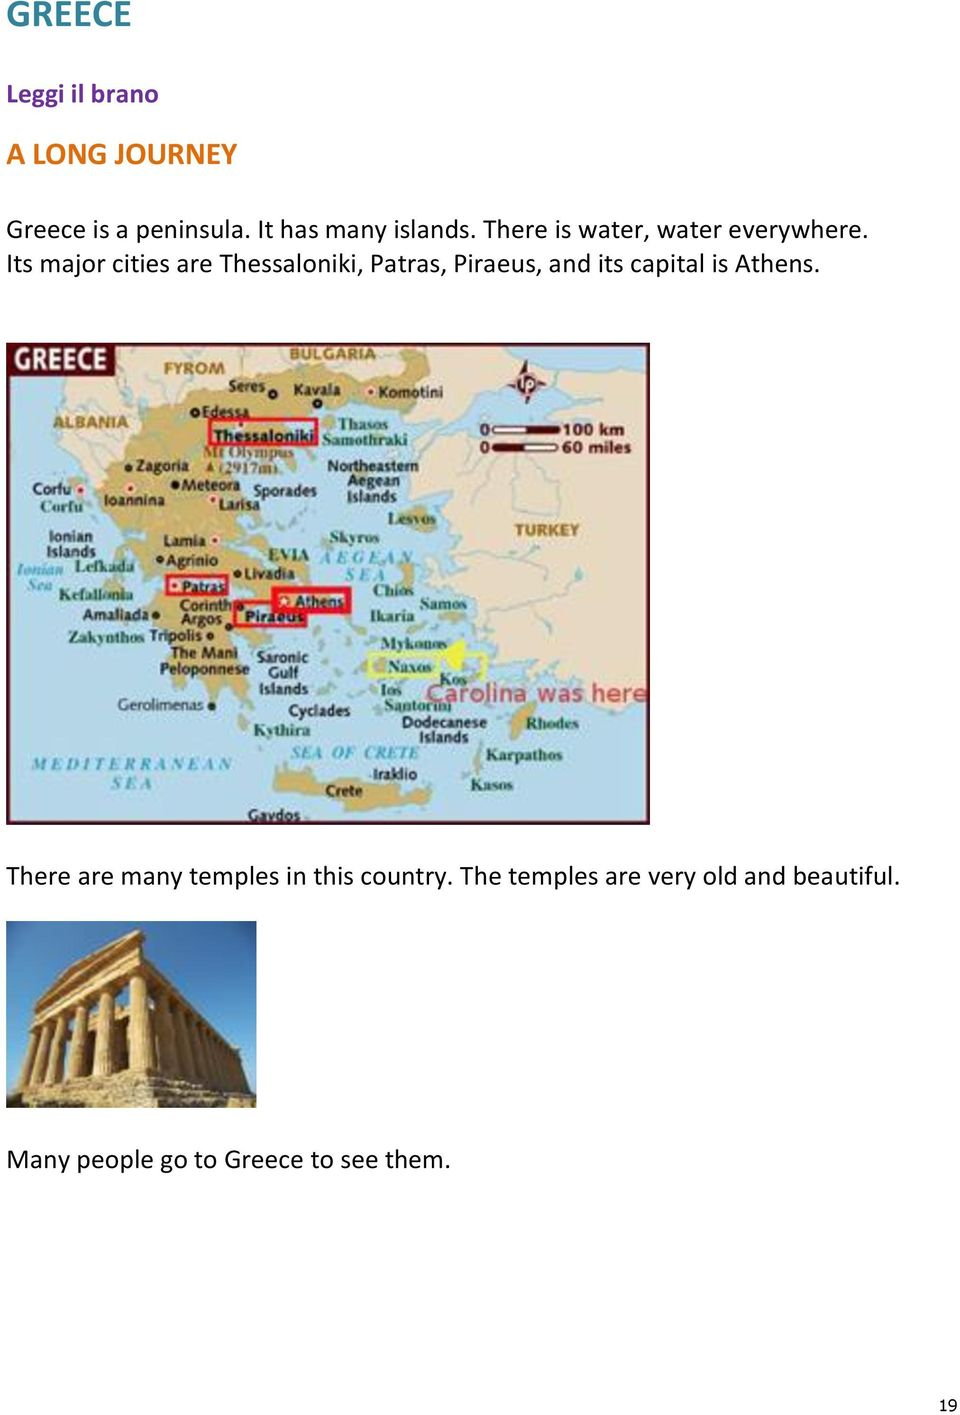 Its major cities are Thessaloniki, Patras, Piraeus, and its capital is Athens.